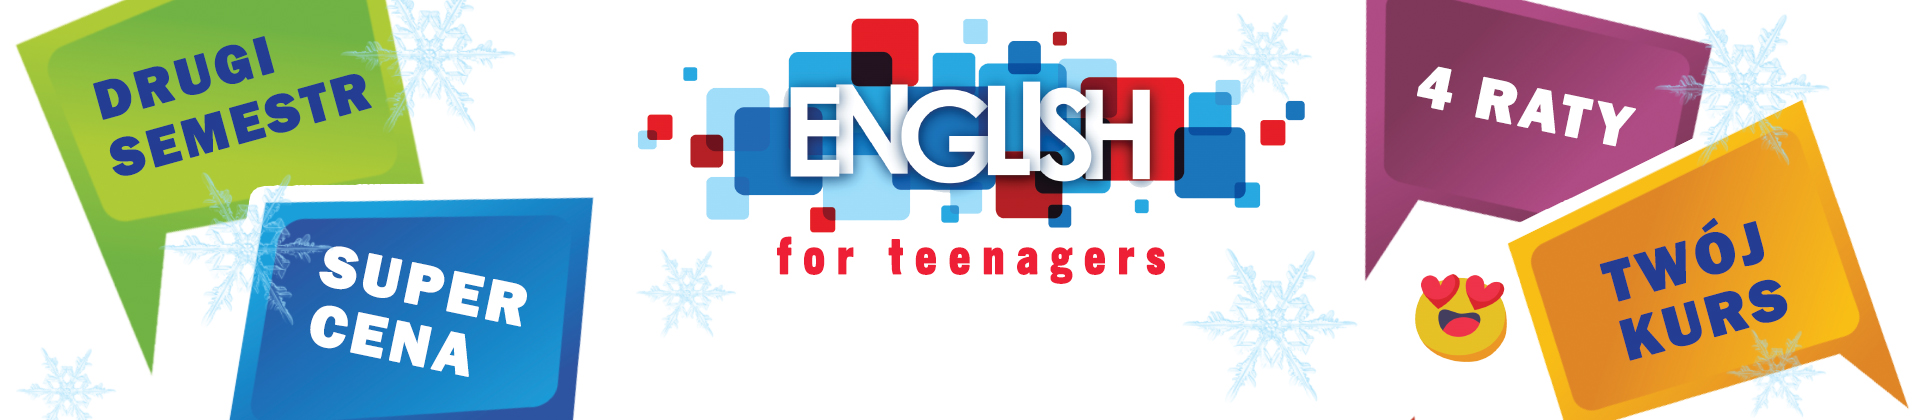 english for teenagers drugi semestr